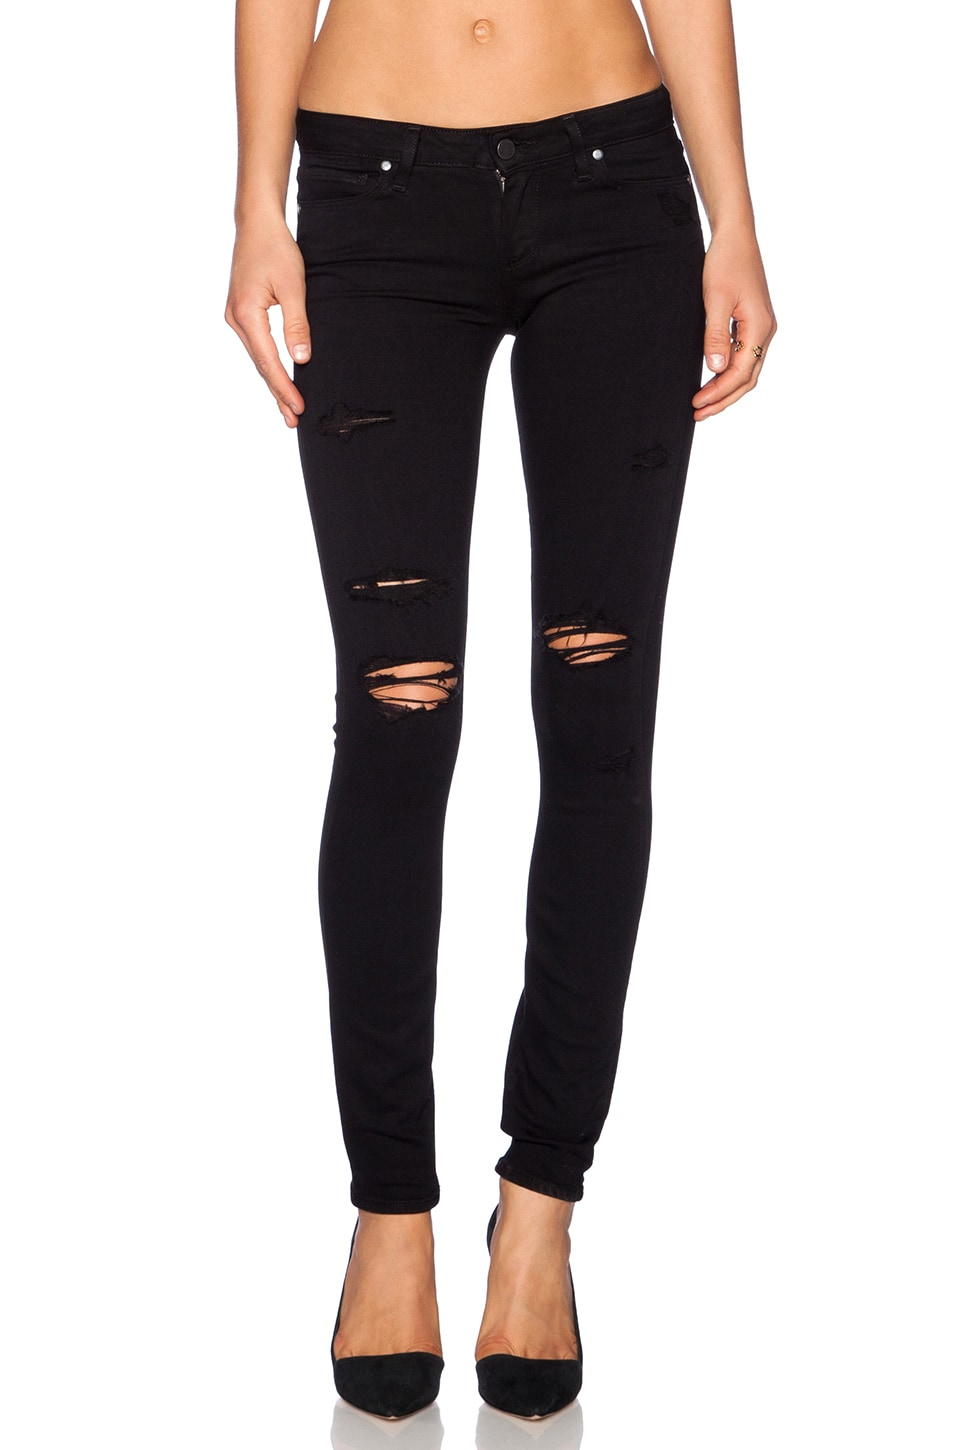 PAIGE Verdugo Ultra Skinny in Black Shadow Destructed